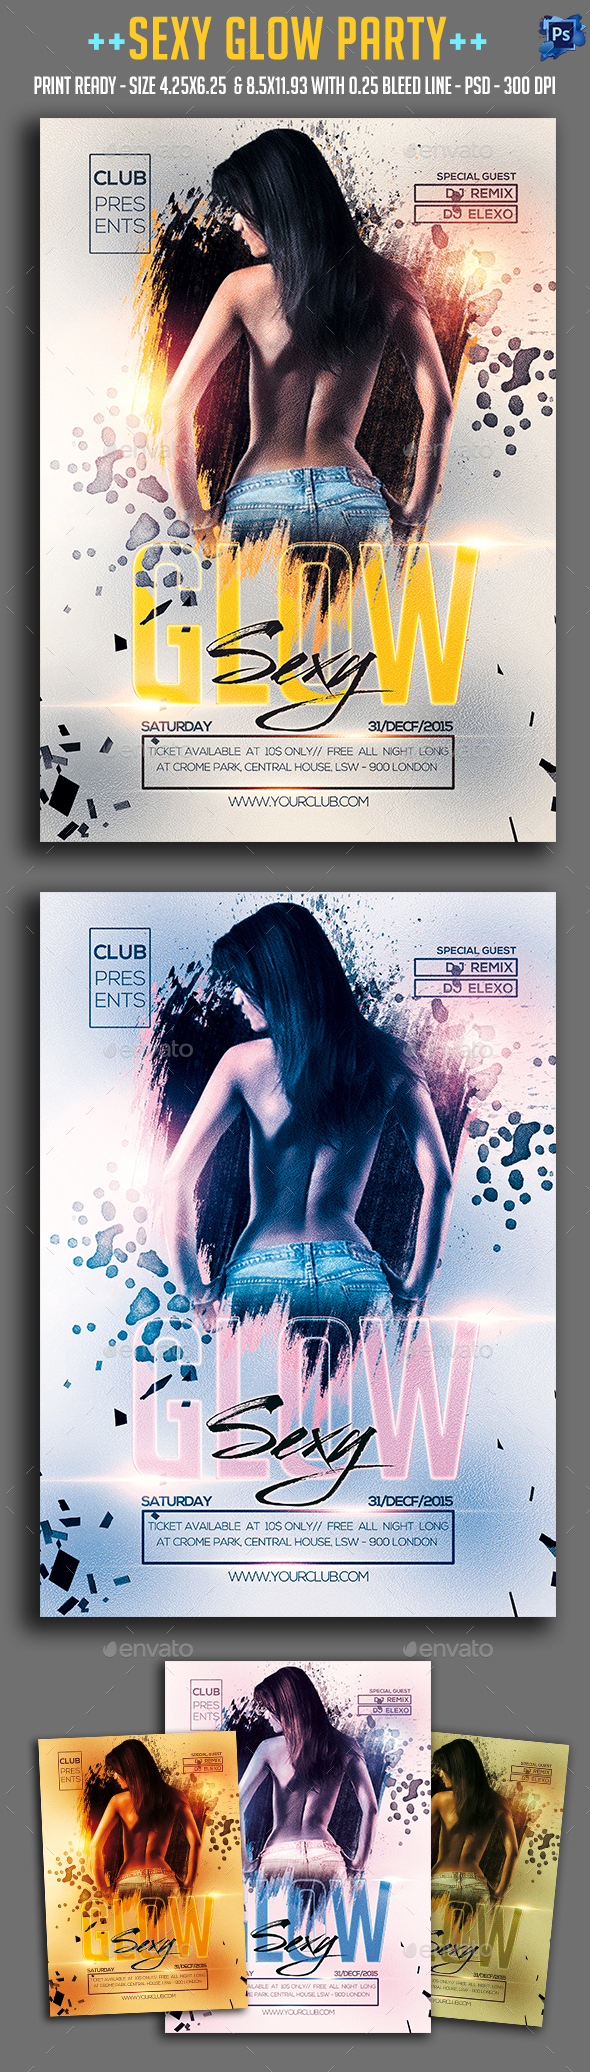 Sexy Glow Party Flyer - Clubs & Parties Events